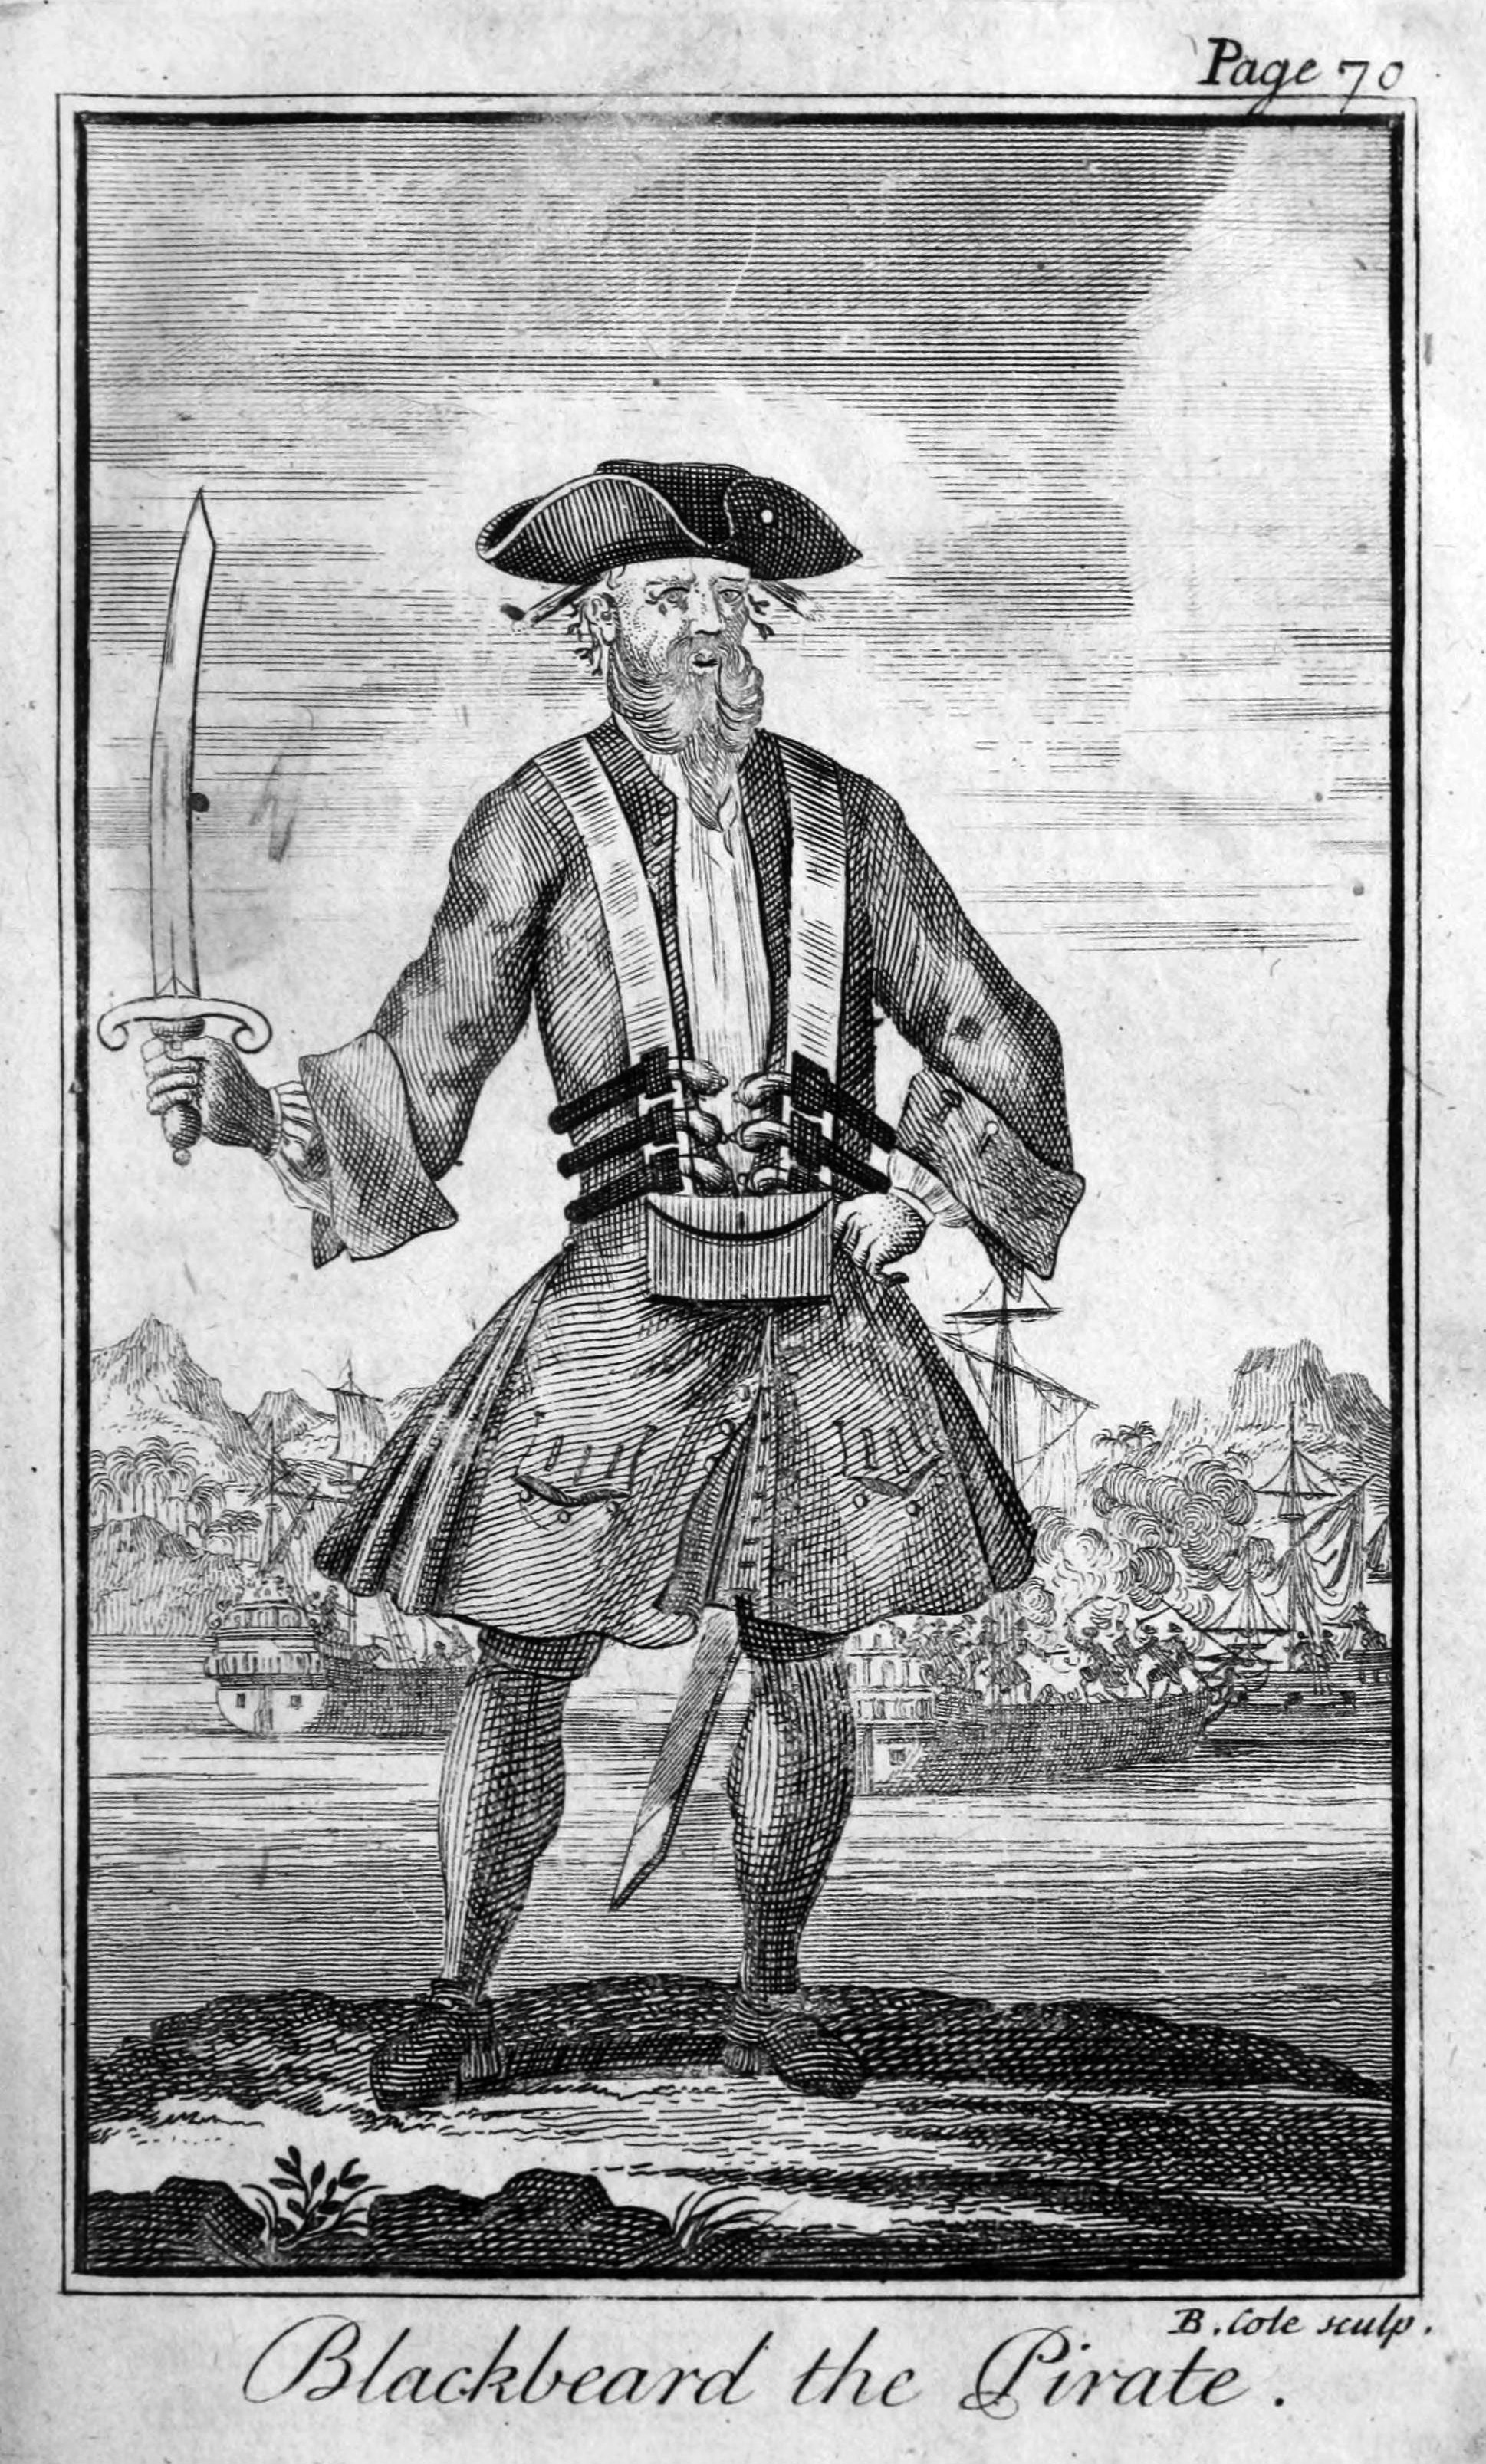 Blackbeard the Pirate from A General History of the Pyrates, 1724